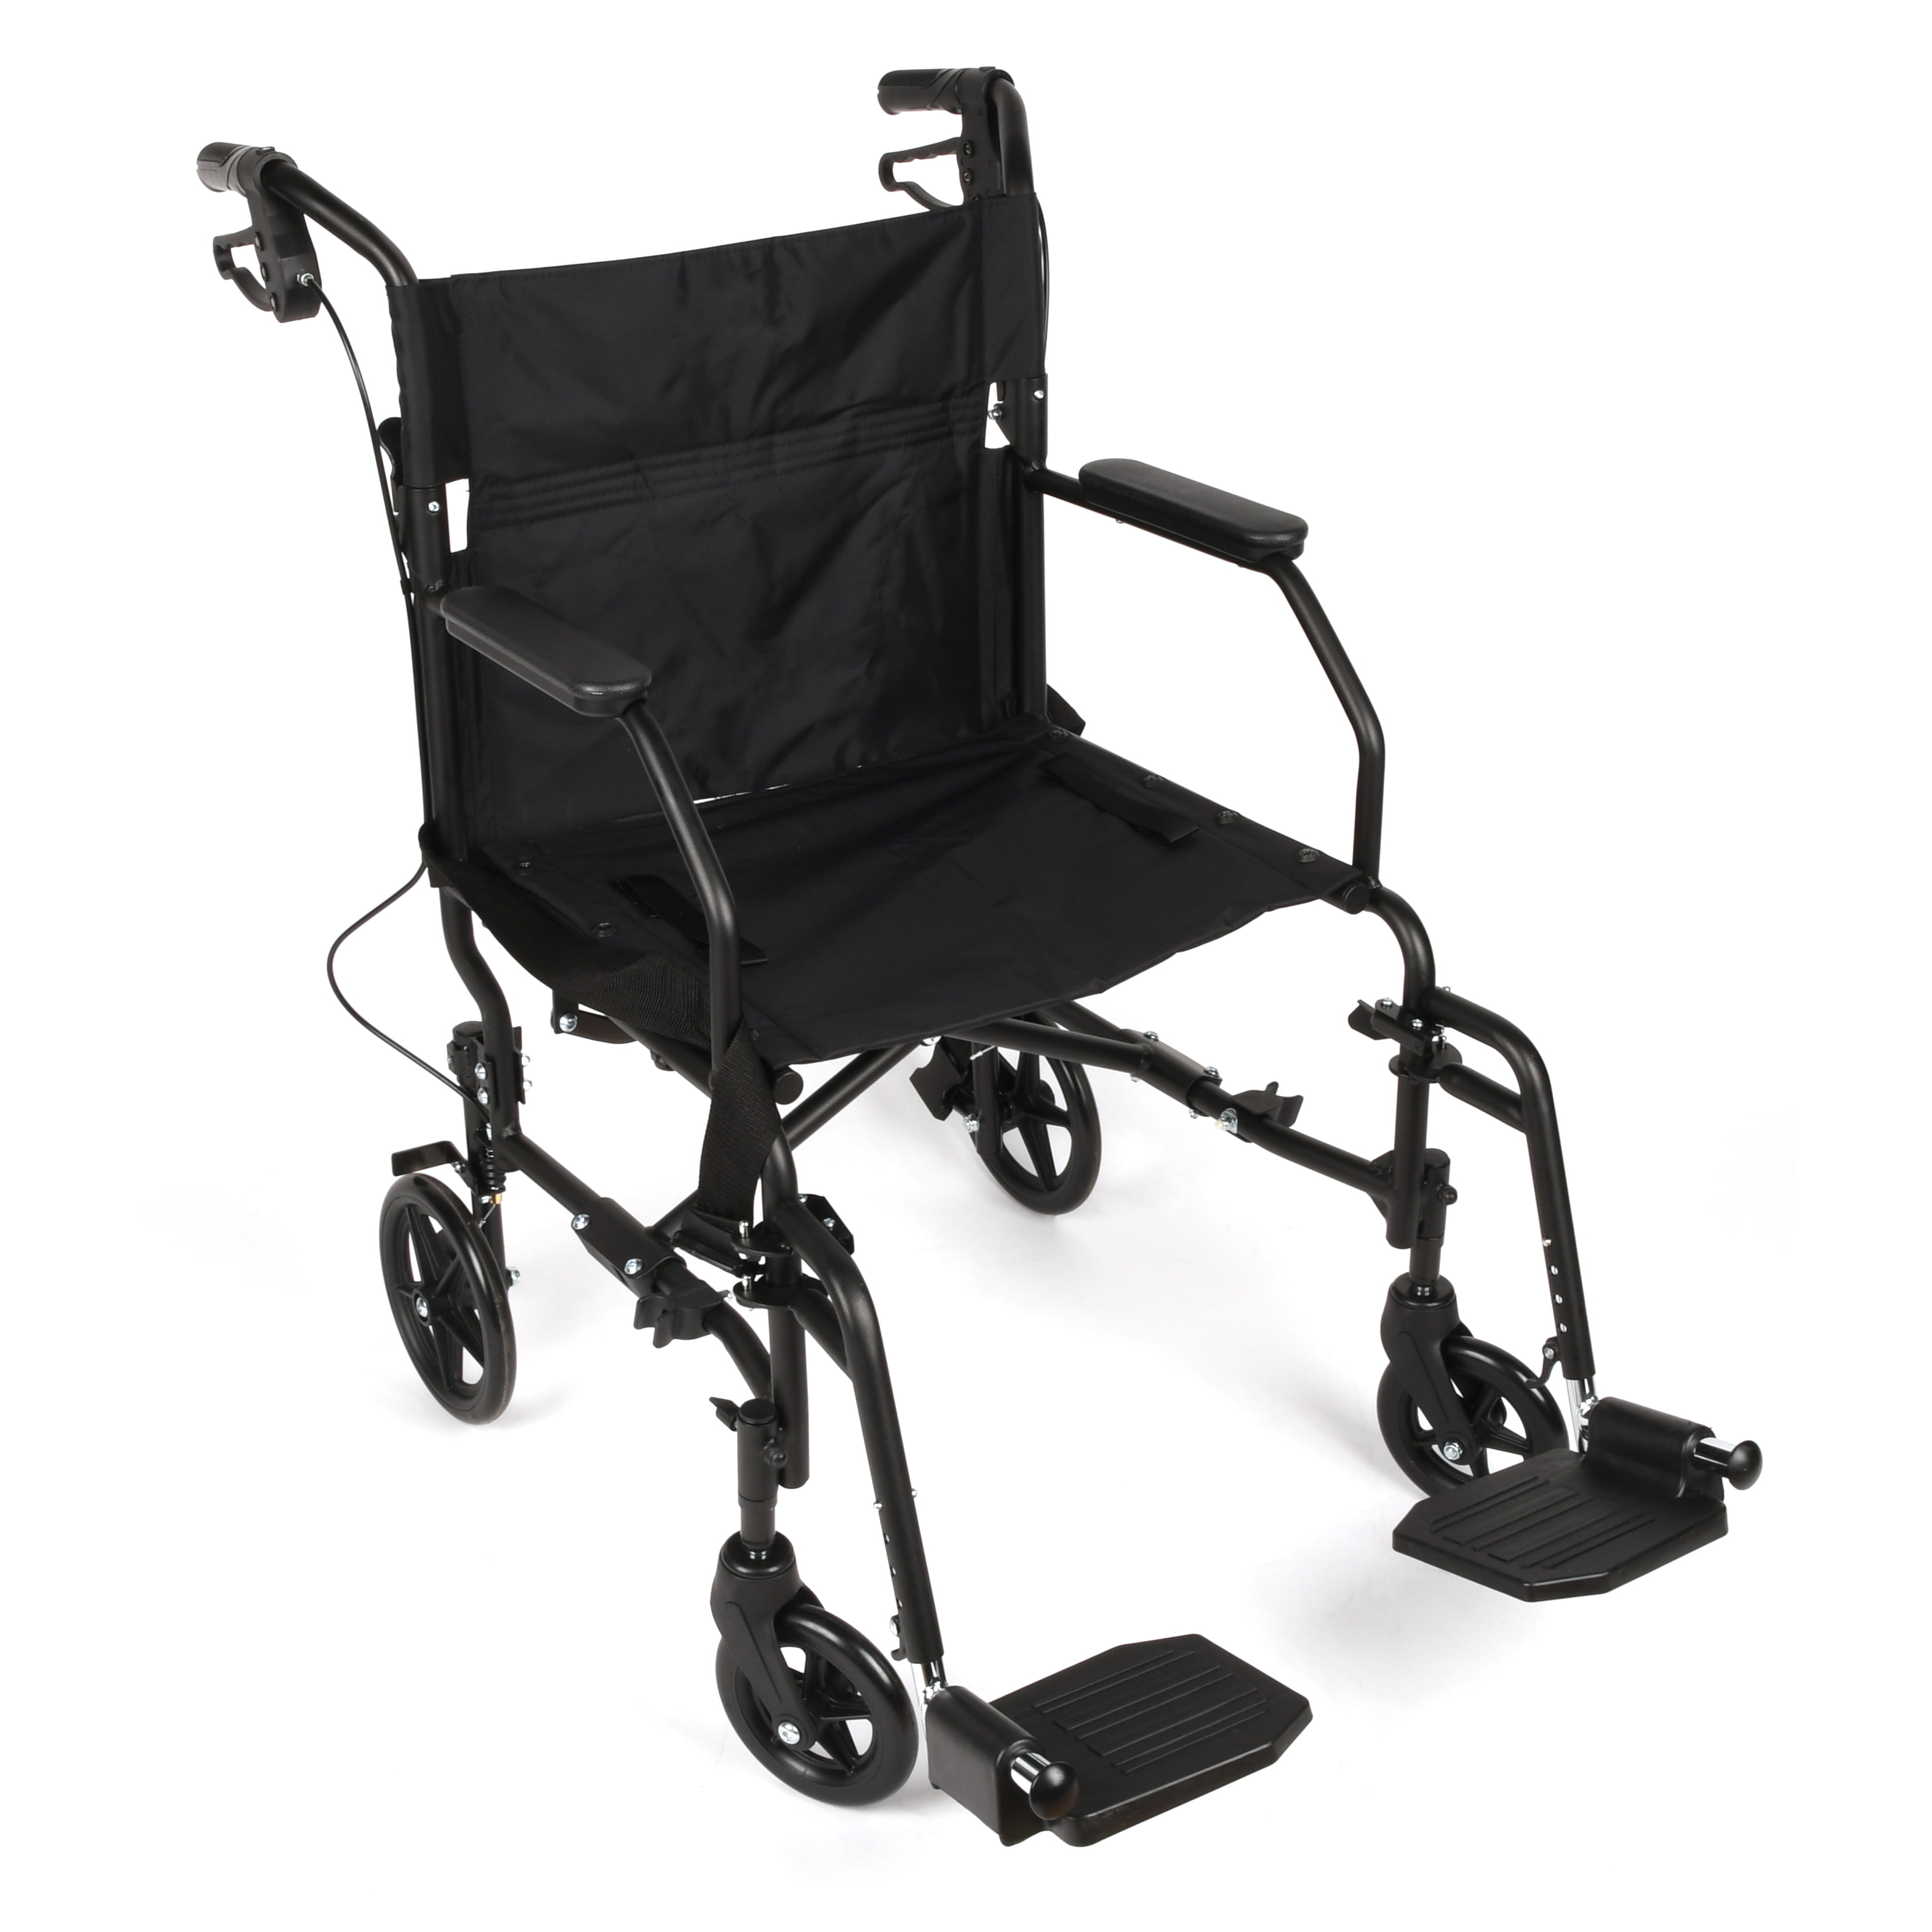 Stupendous Equate Steel Transport Wheelchair 19 Seat Folds For Easy Storage Travel 300 Lbs Weight Capacity Walmart Com Bralicious Painted Fabric Chair Ideas Braliciousco